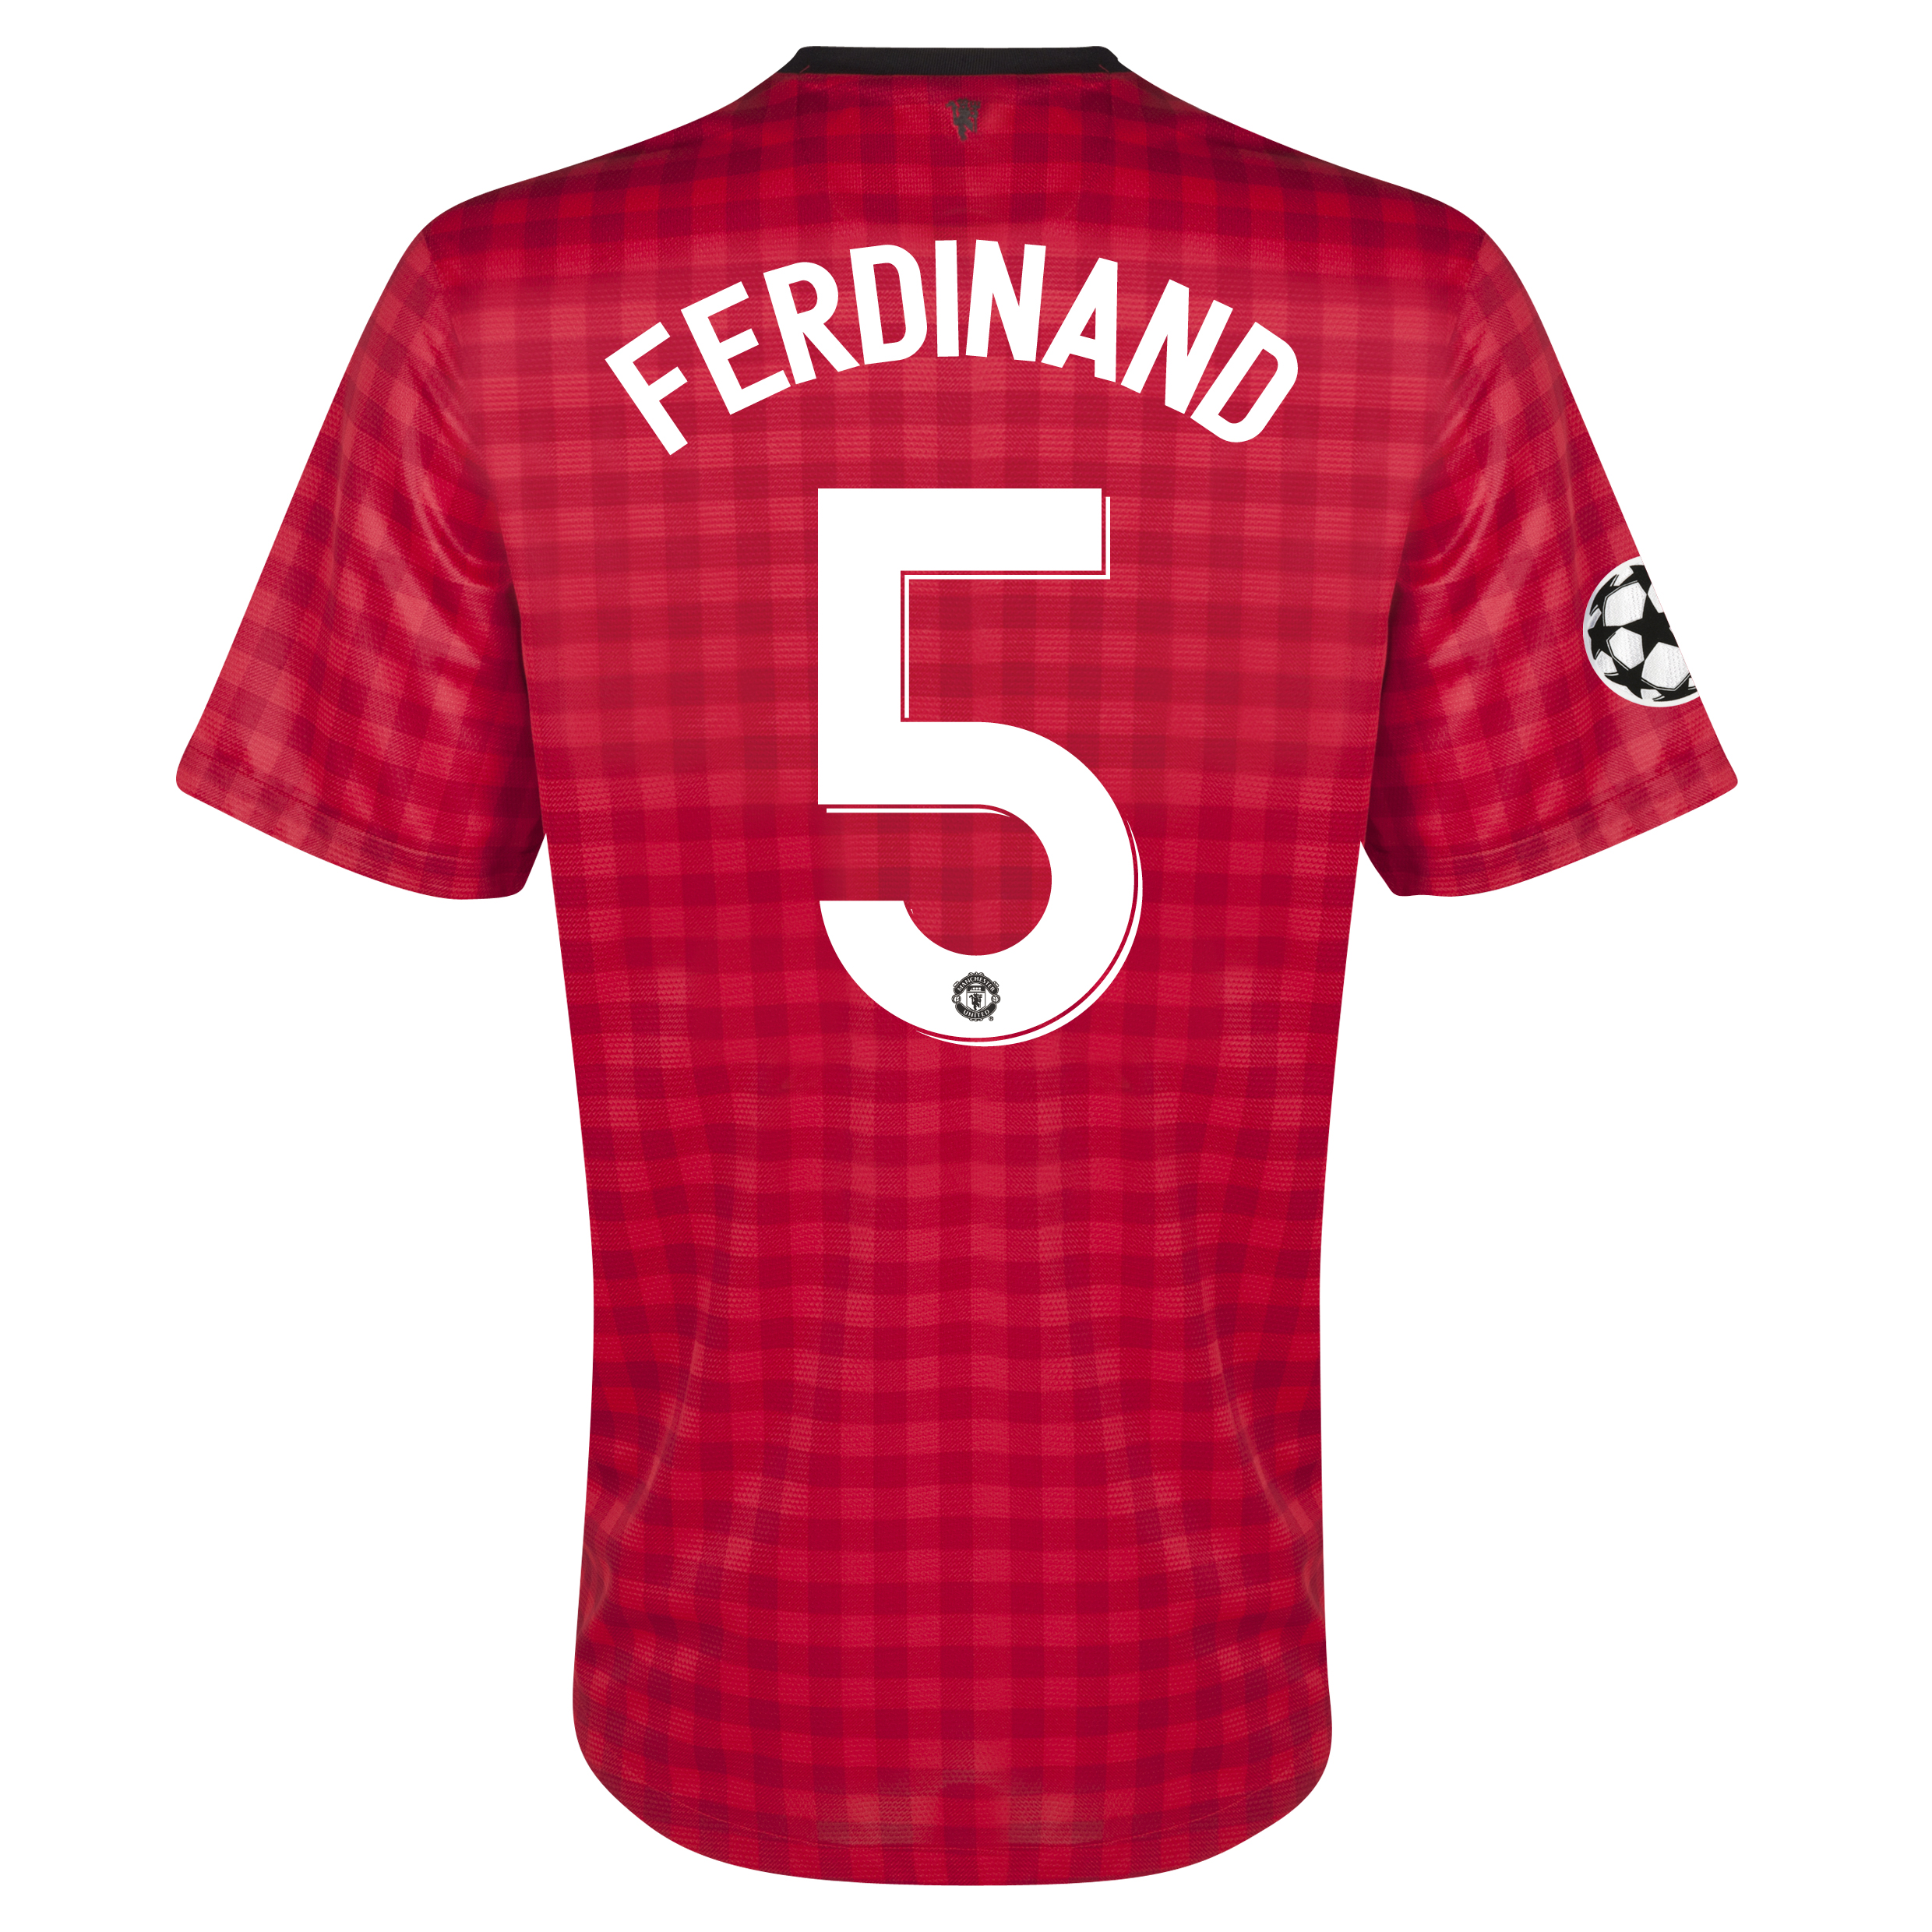 Man United UEFA Champions League Home Shirt 2012/13  - Youths with Ferdinand 5 printing